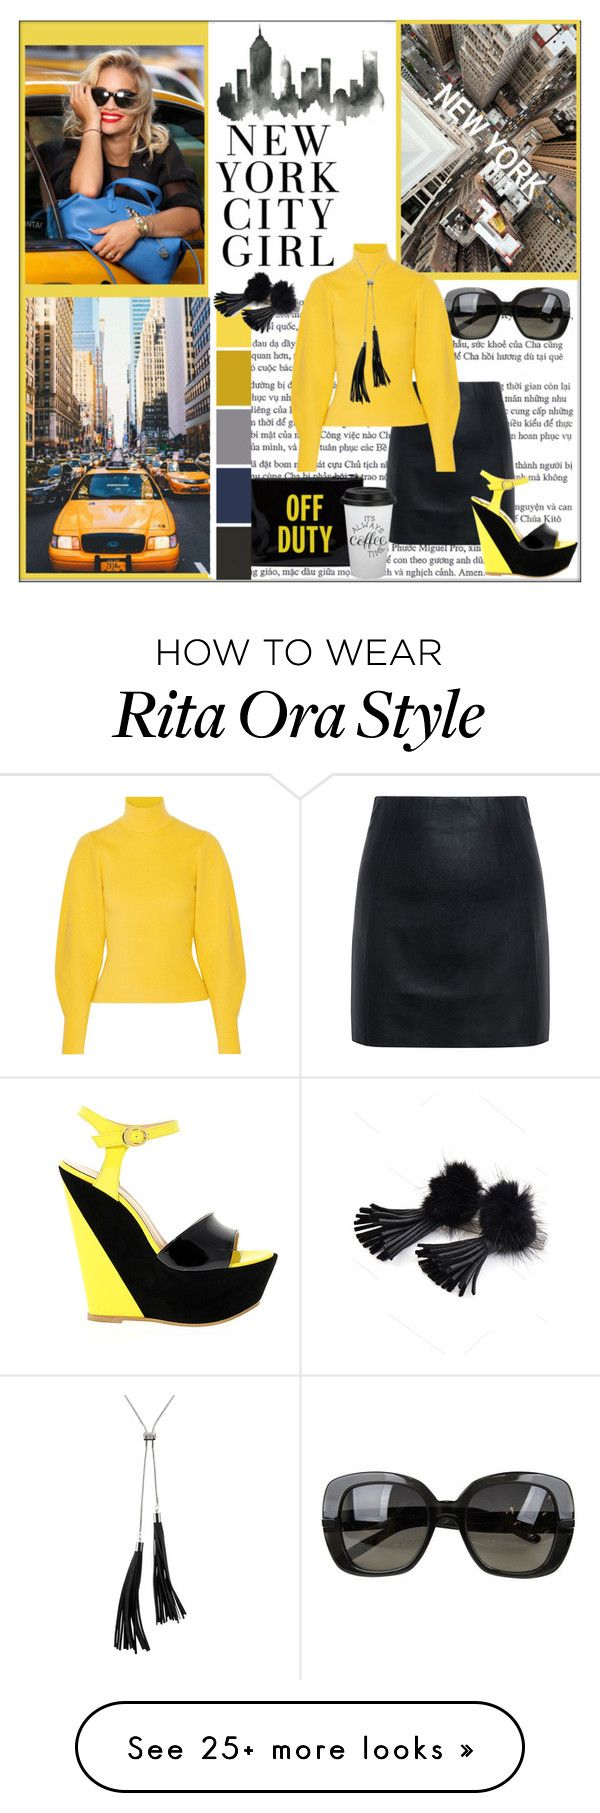 """""""City Landscape: New York"""" by pat912 on Polyvore featuring Kate Spade, DKNY, McQ by Alexander McQueen, Bottega Veneta, Thierry Mugler, White House Black Market and polyvoreeditorial"""